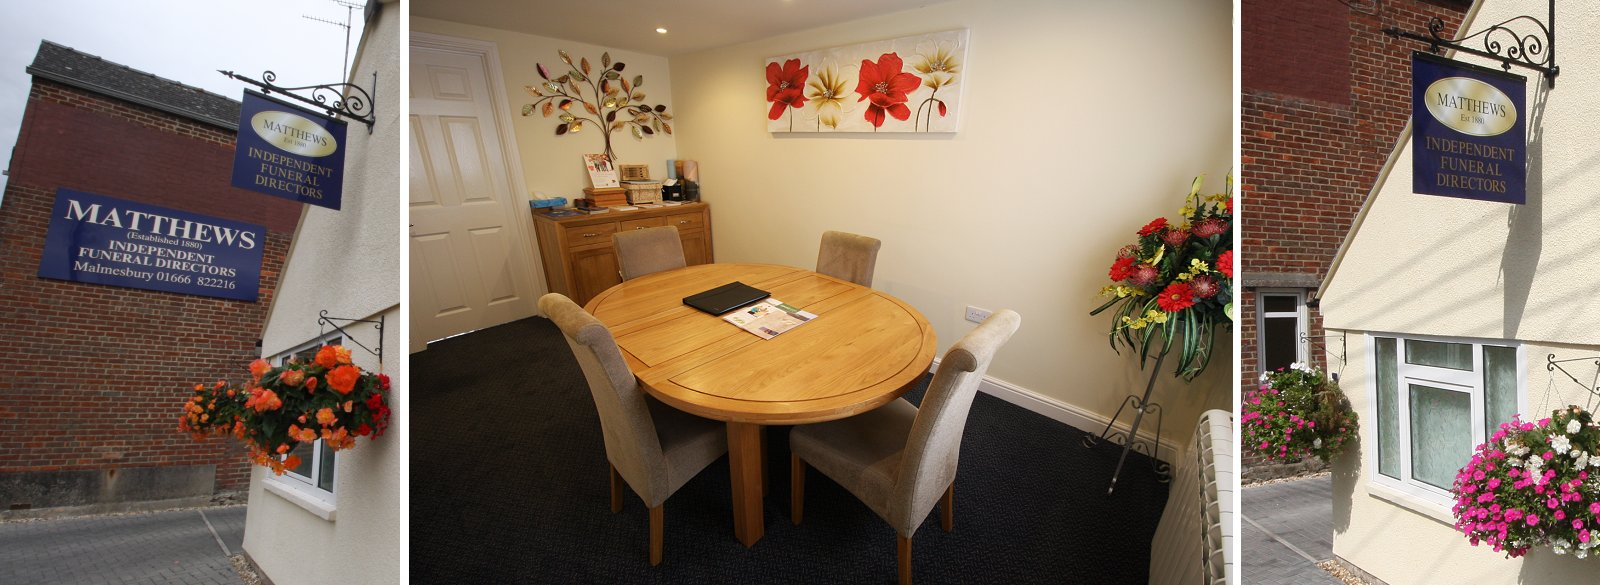 Our meeting room - Matthews of Malmesbury Funeral Directors